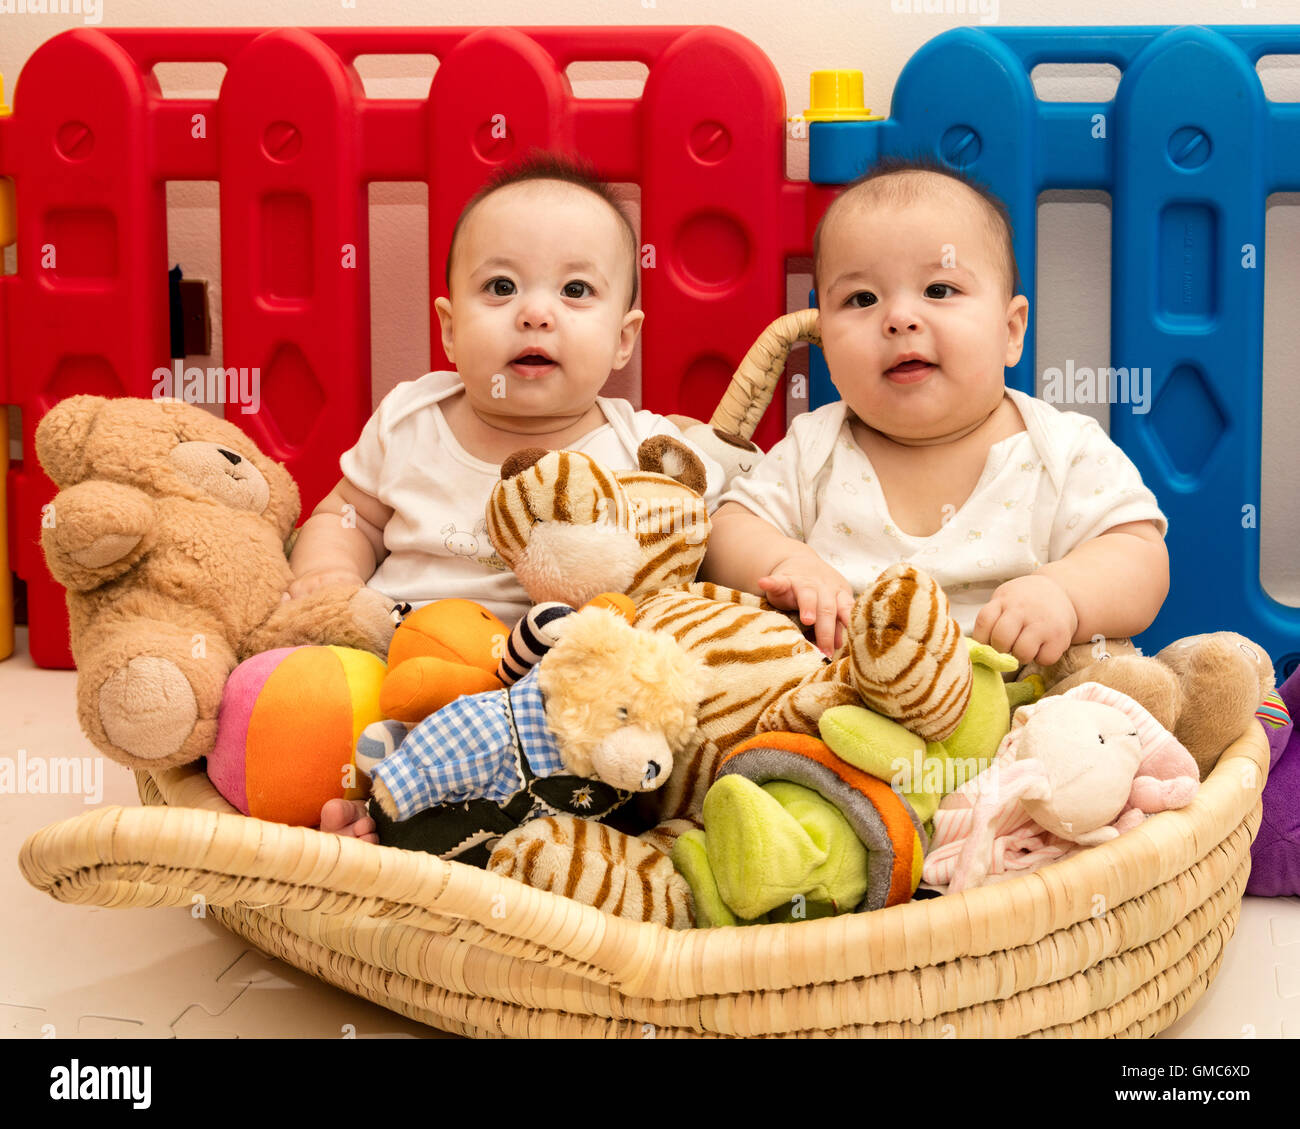 two happy twin babies in basket of toys in playpen - Stock Image